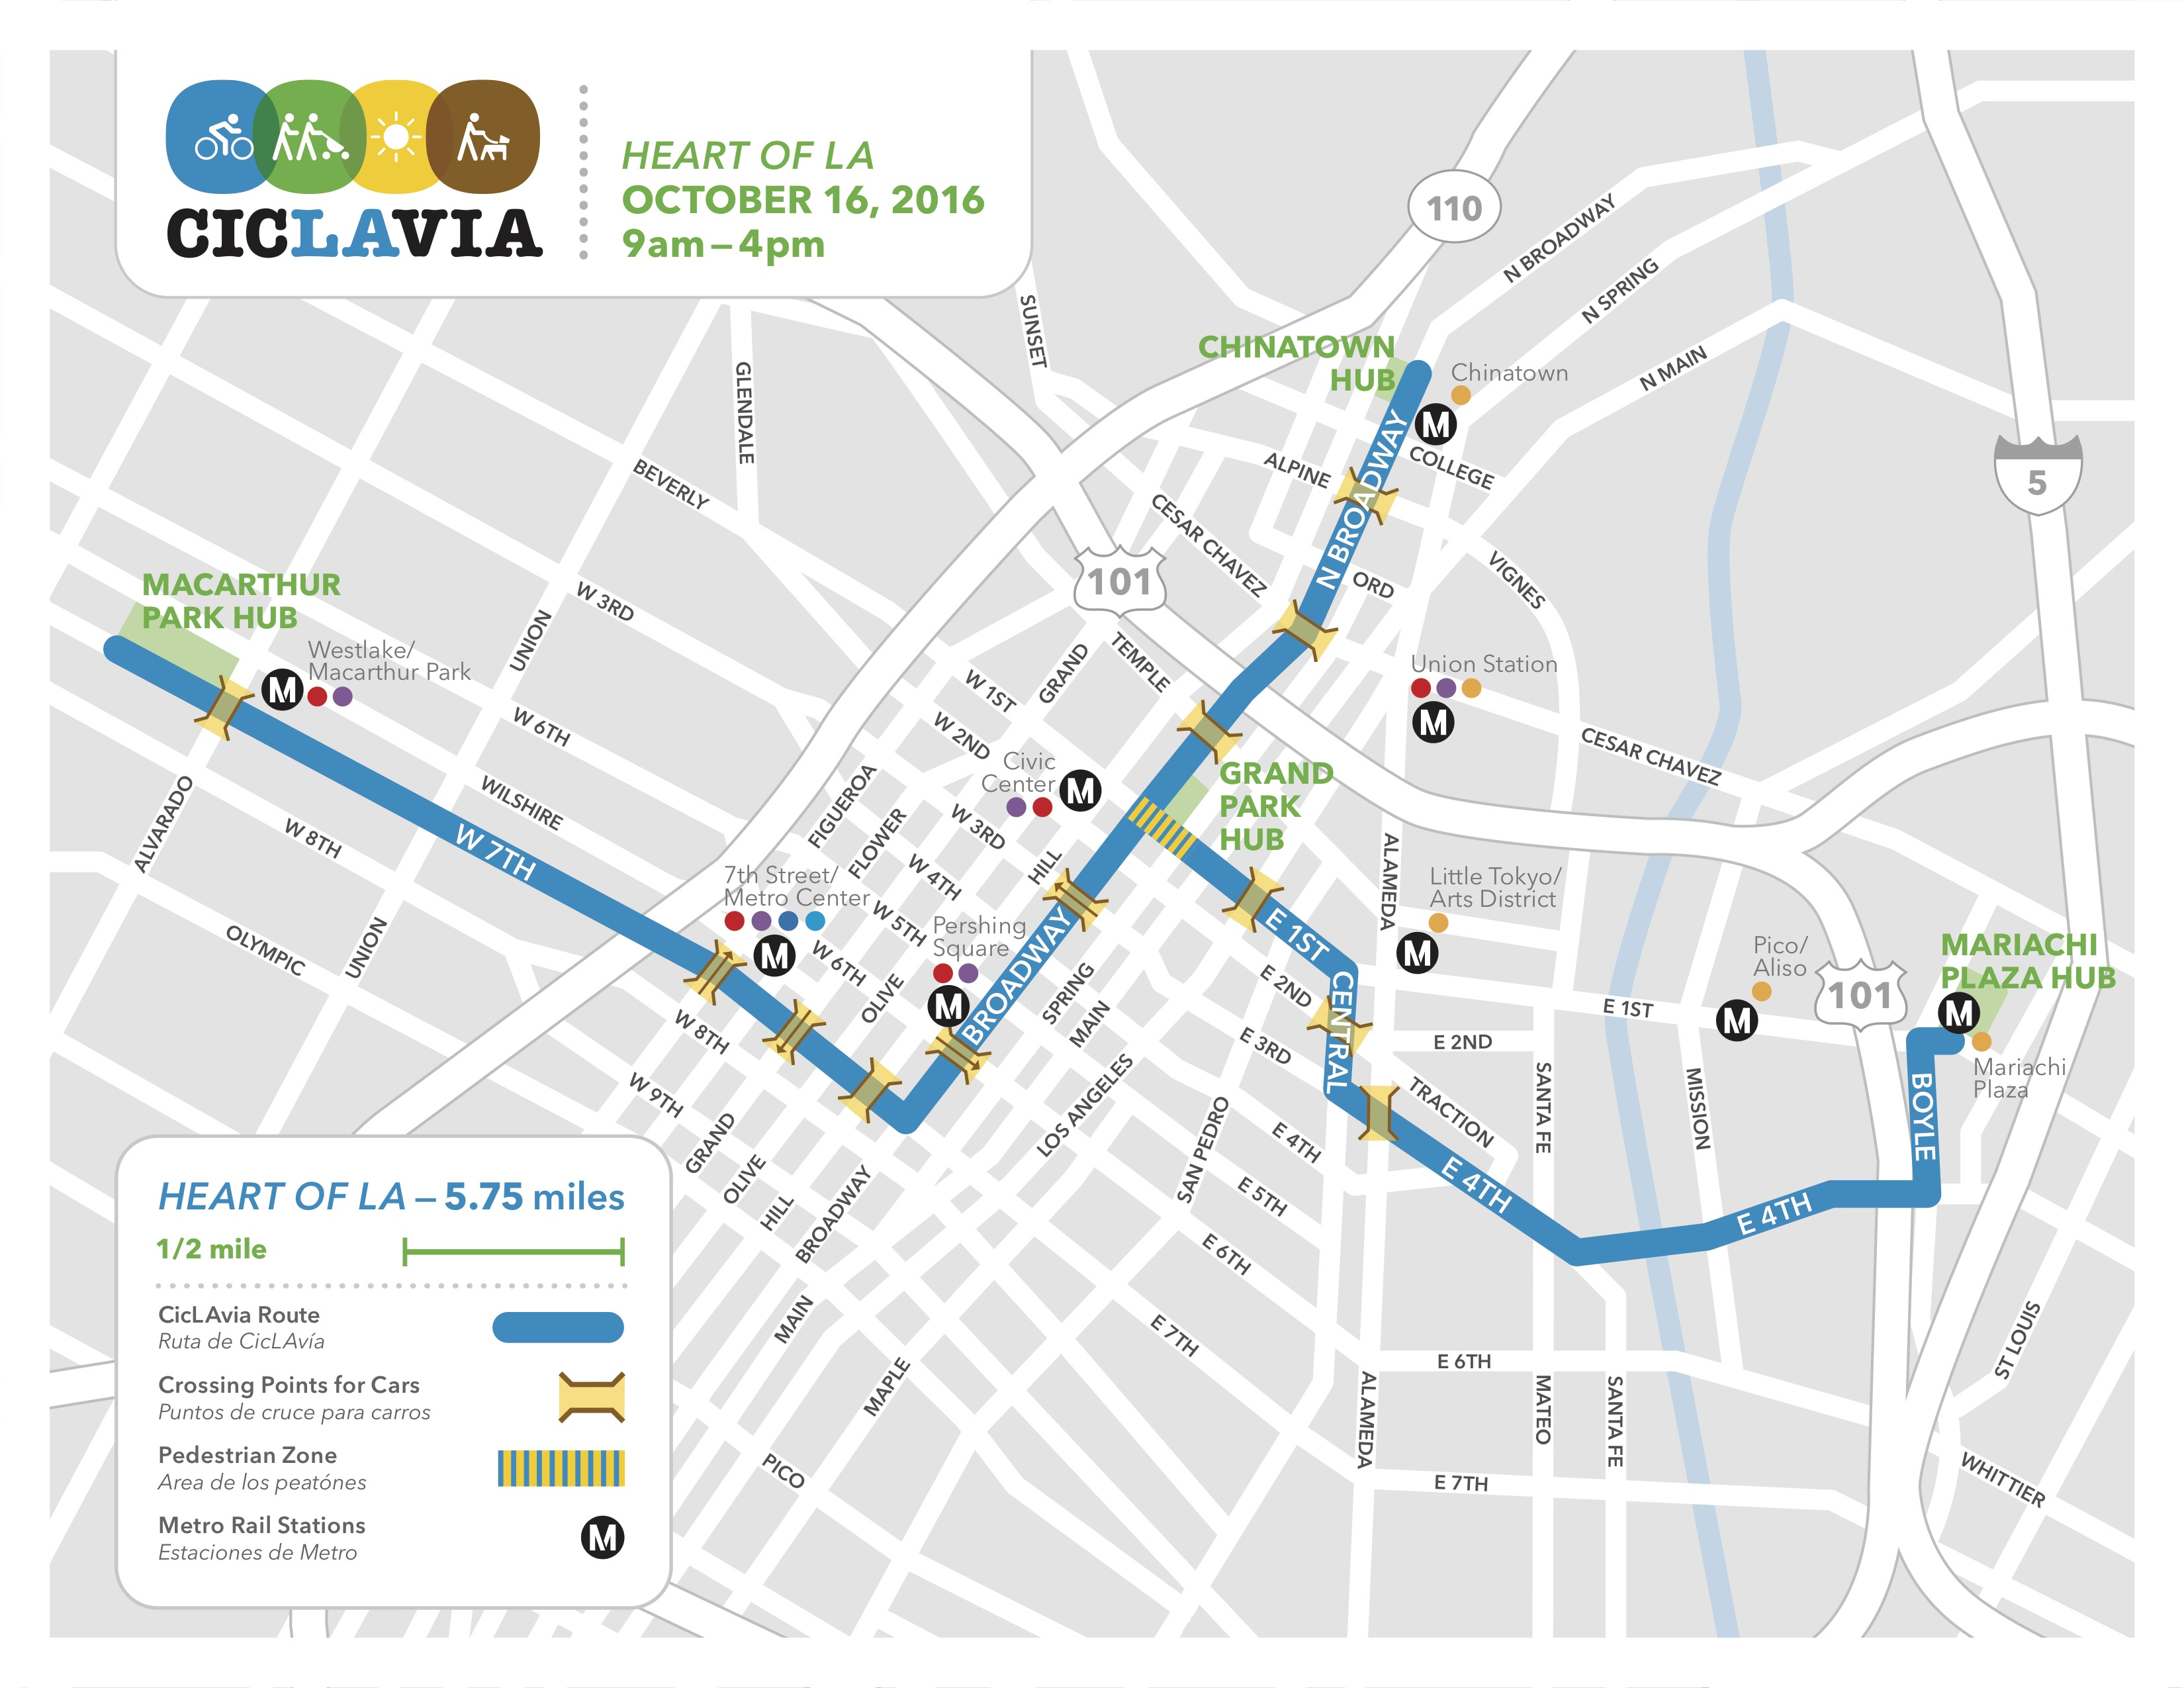 ciclavia-heart-of-la-2016